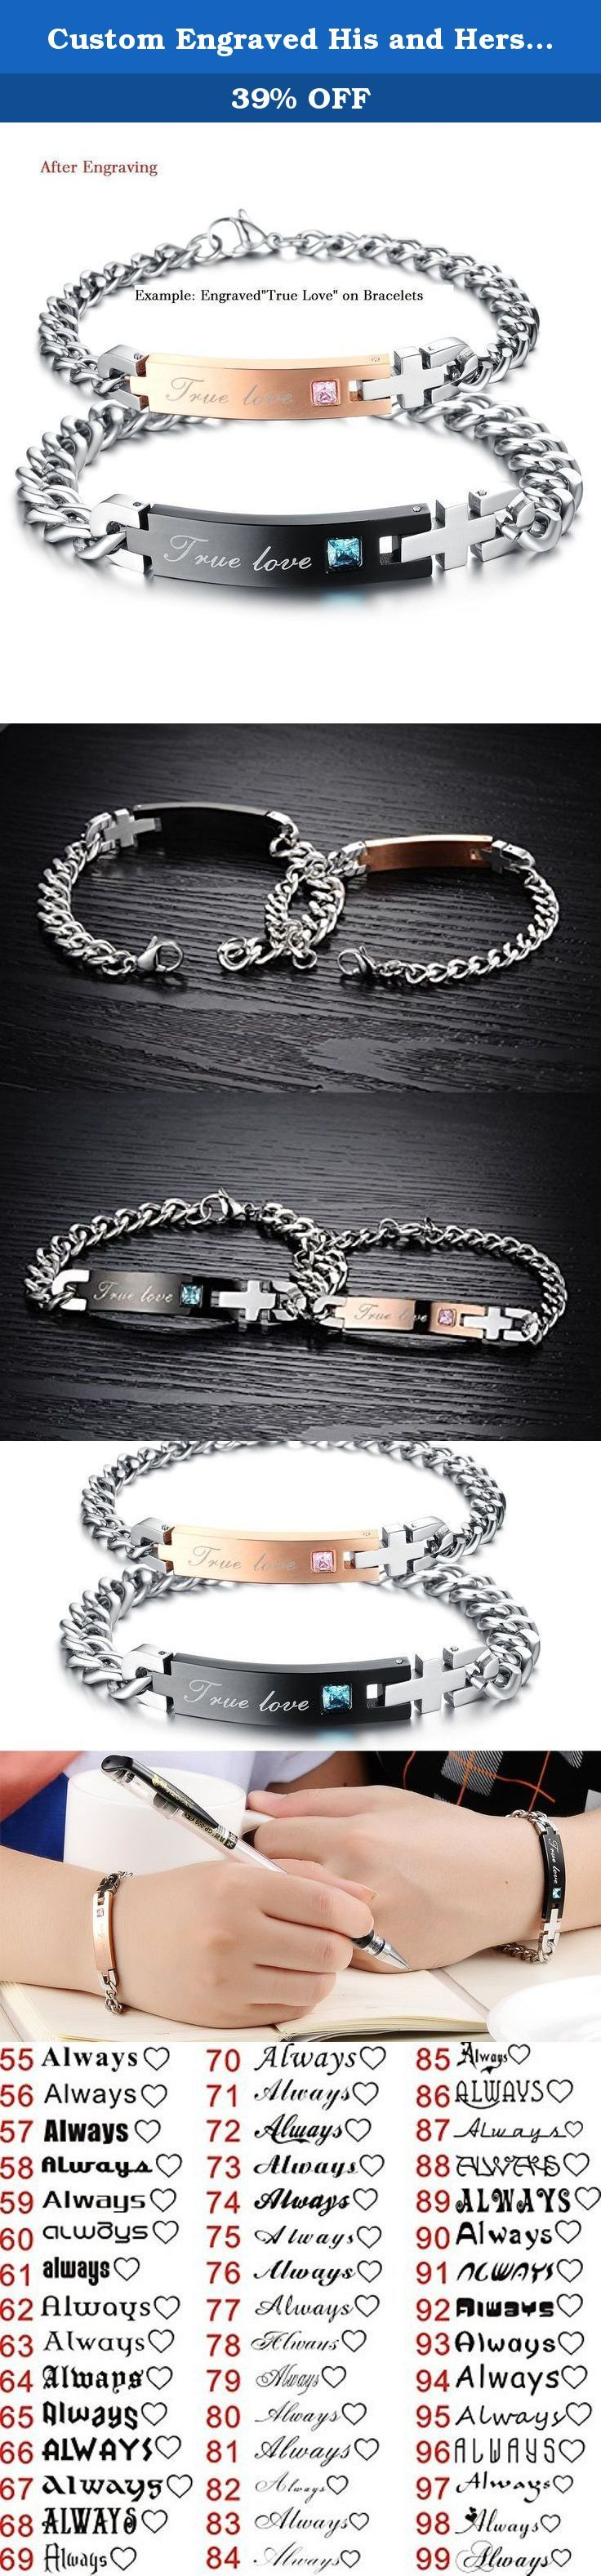 Custom Engraved His and Hers Matching Sets 316L Stainless Steel Bracelets Unique Anniversary Gift. Engraved your wedding anniversary date or your vows into the bracelets might be a good idea to make a special gift to him or her. These engraveble bracelets are with high polishing skills,which makes the bracelets more exquisite and generous.Get this unique gift to your other half. About Engraving: Both front and back sides could be engraved by free. Better to keep the characters within 15…